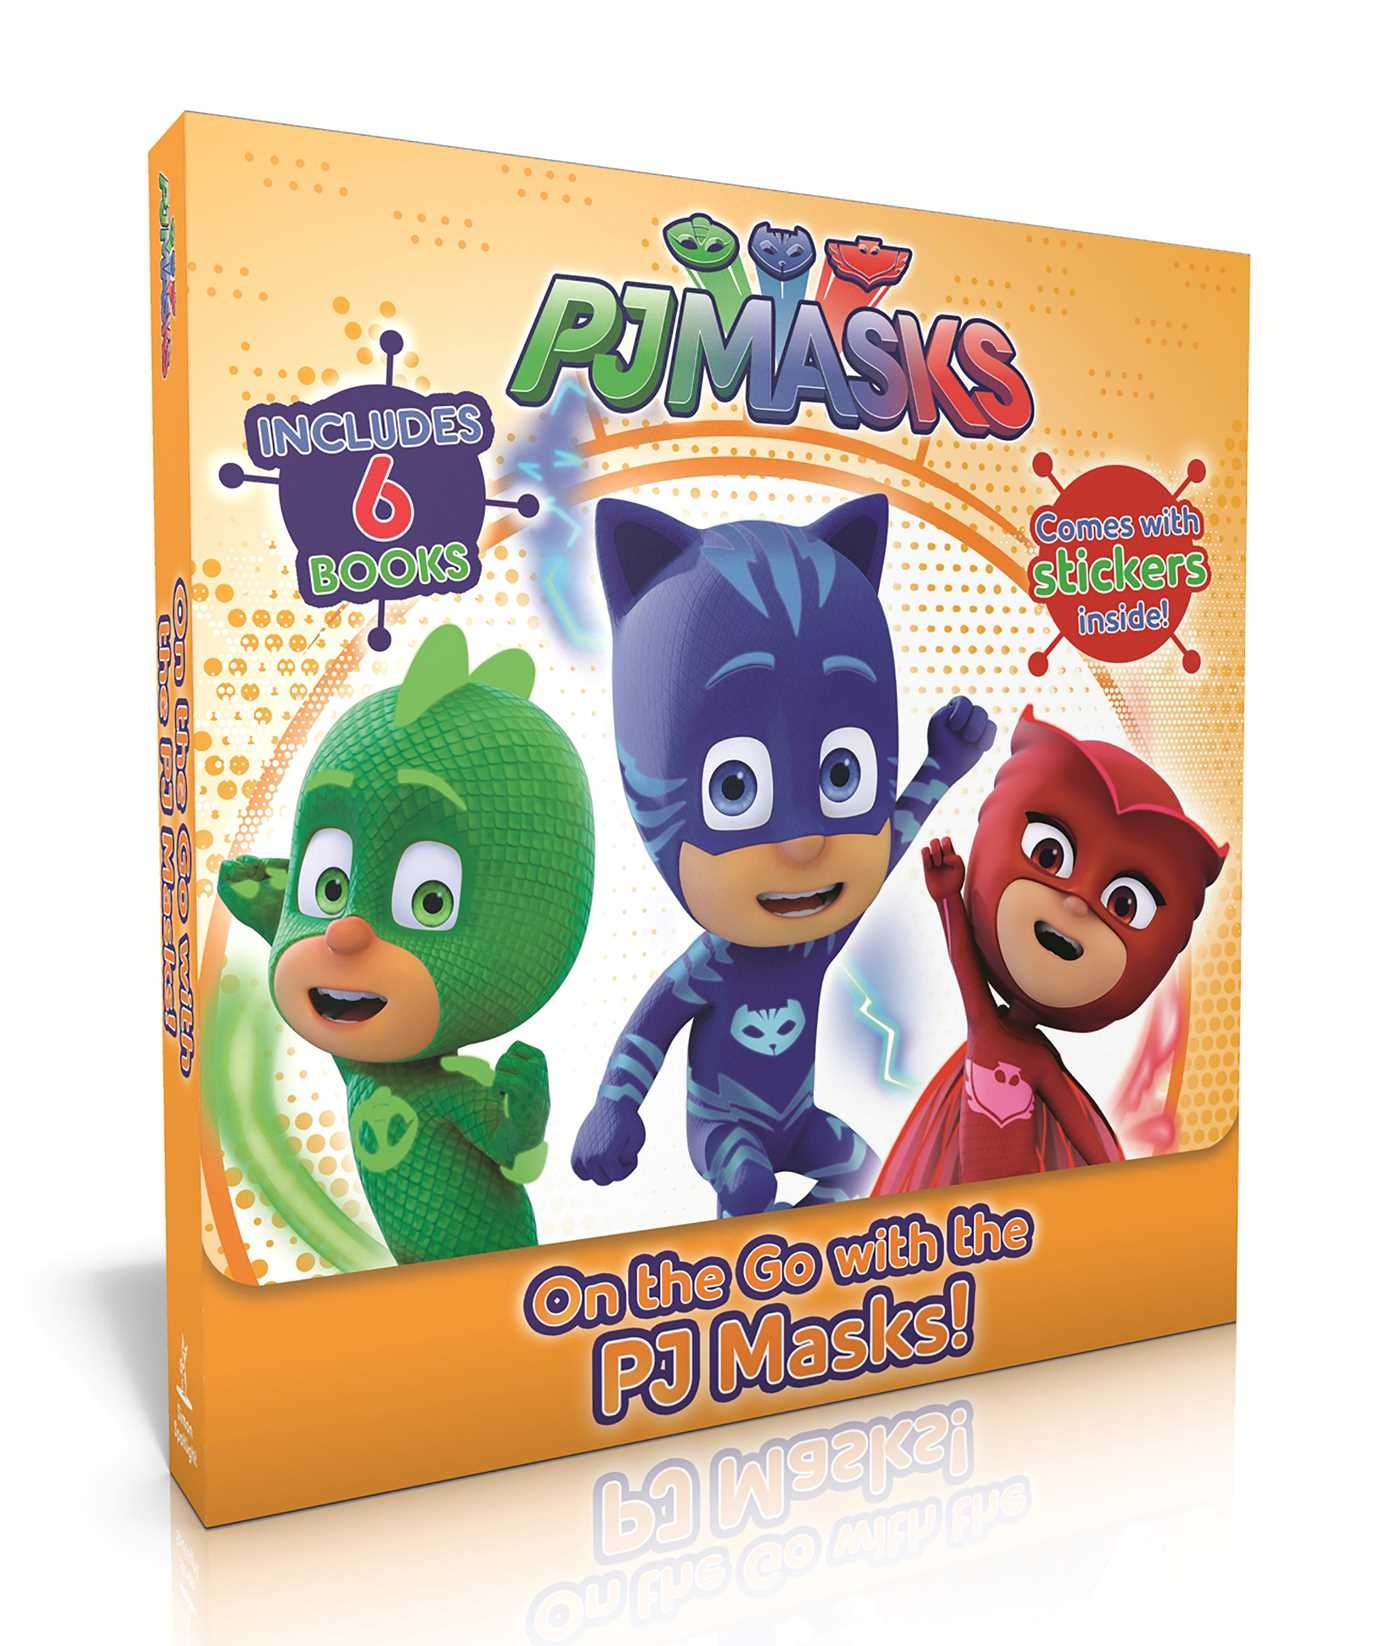 On the Go with the Pj Masks!: Into the Night to Save the Day!; Owlette Gets a Pet; Pj Masks Make Friends!; Super Team; Pj Masks and the Dinosaur!;